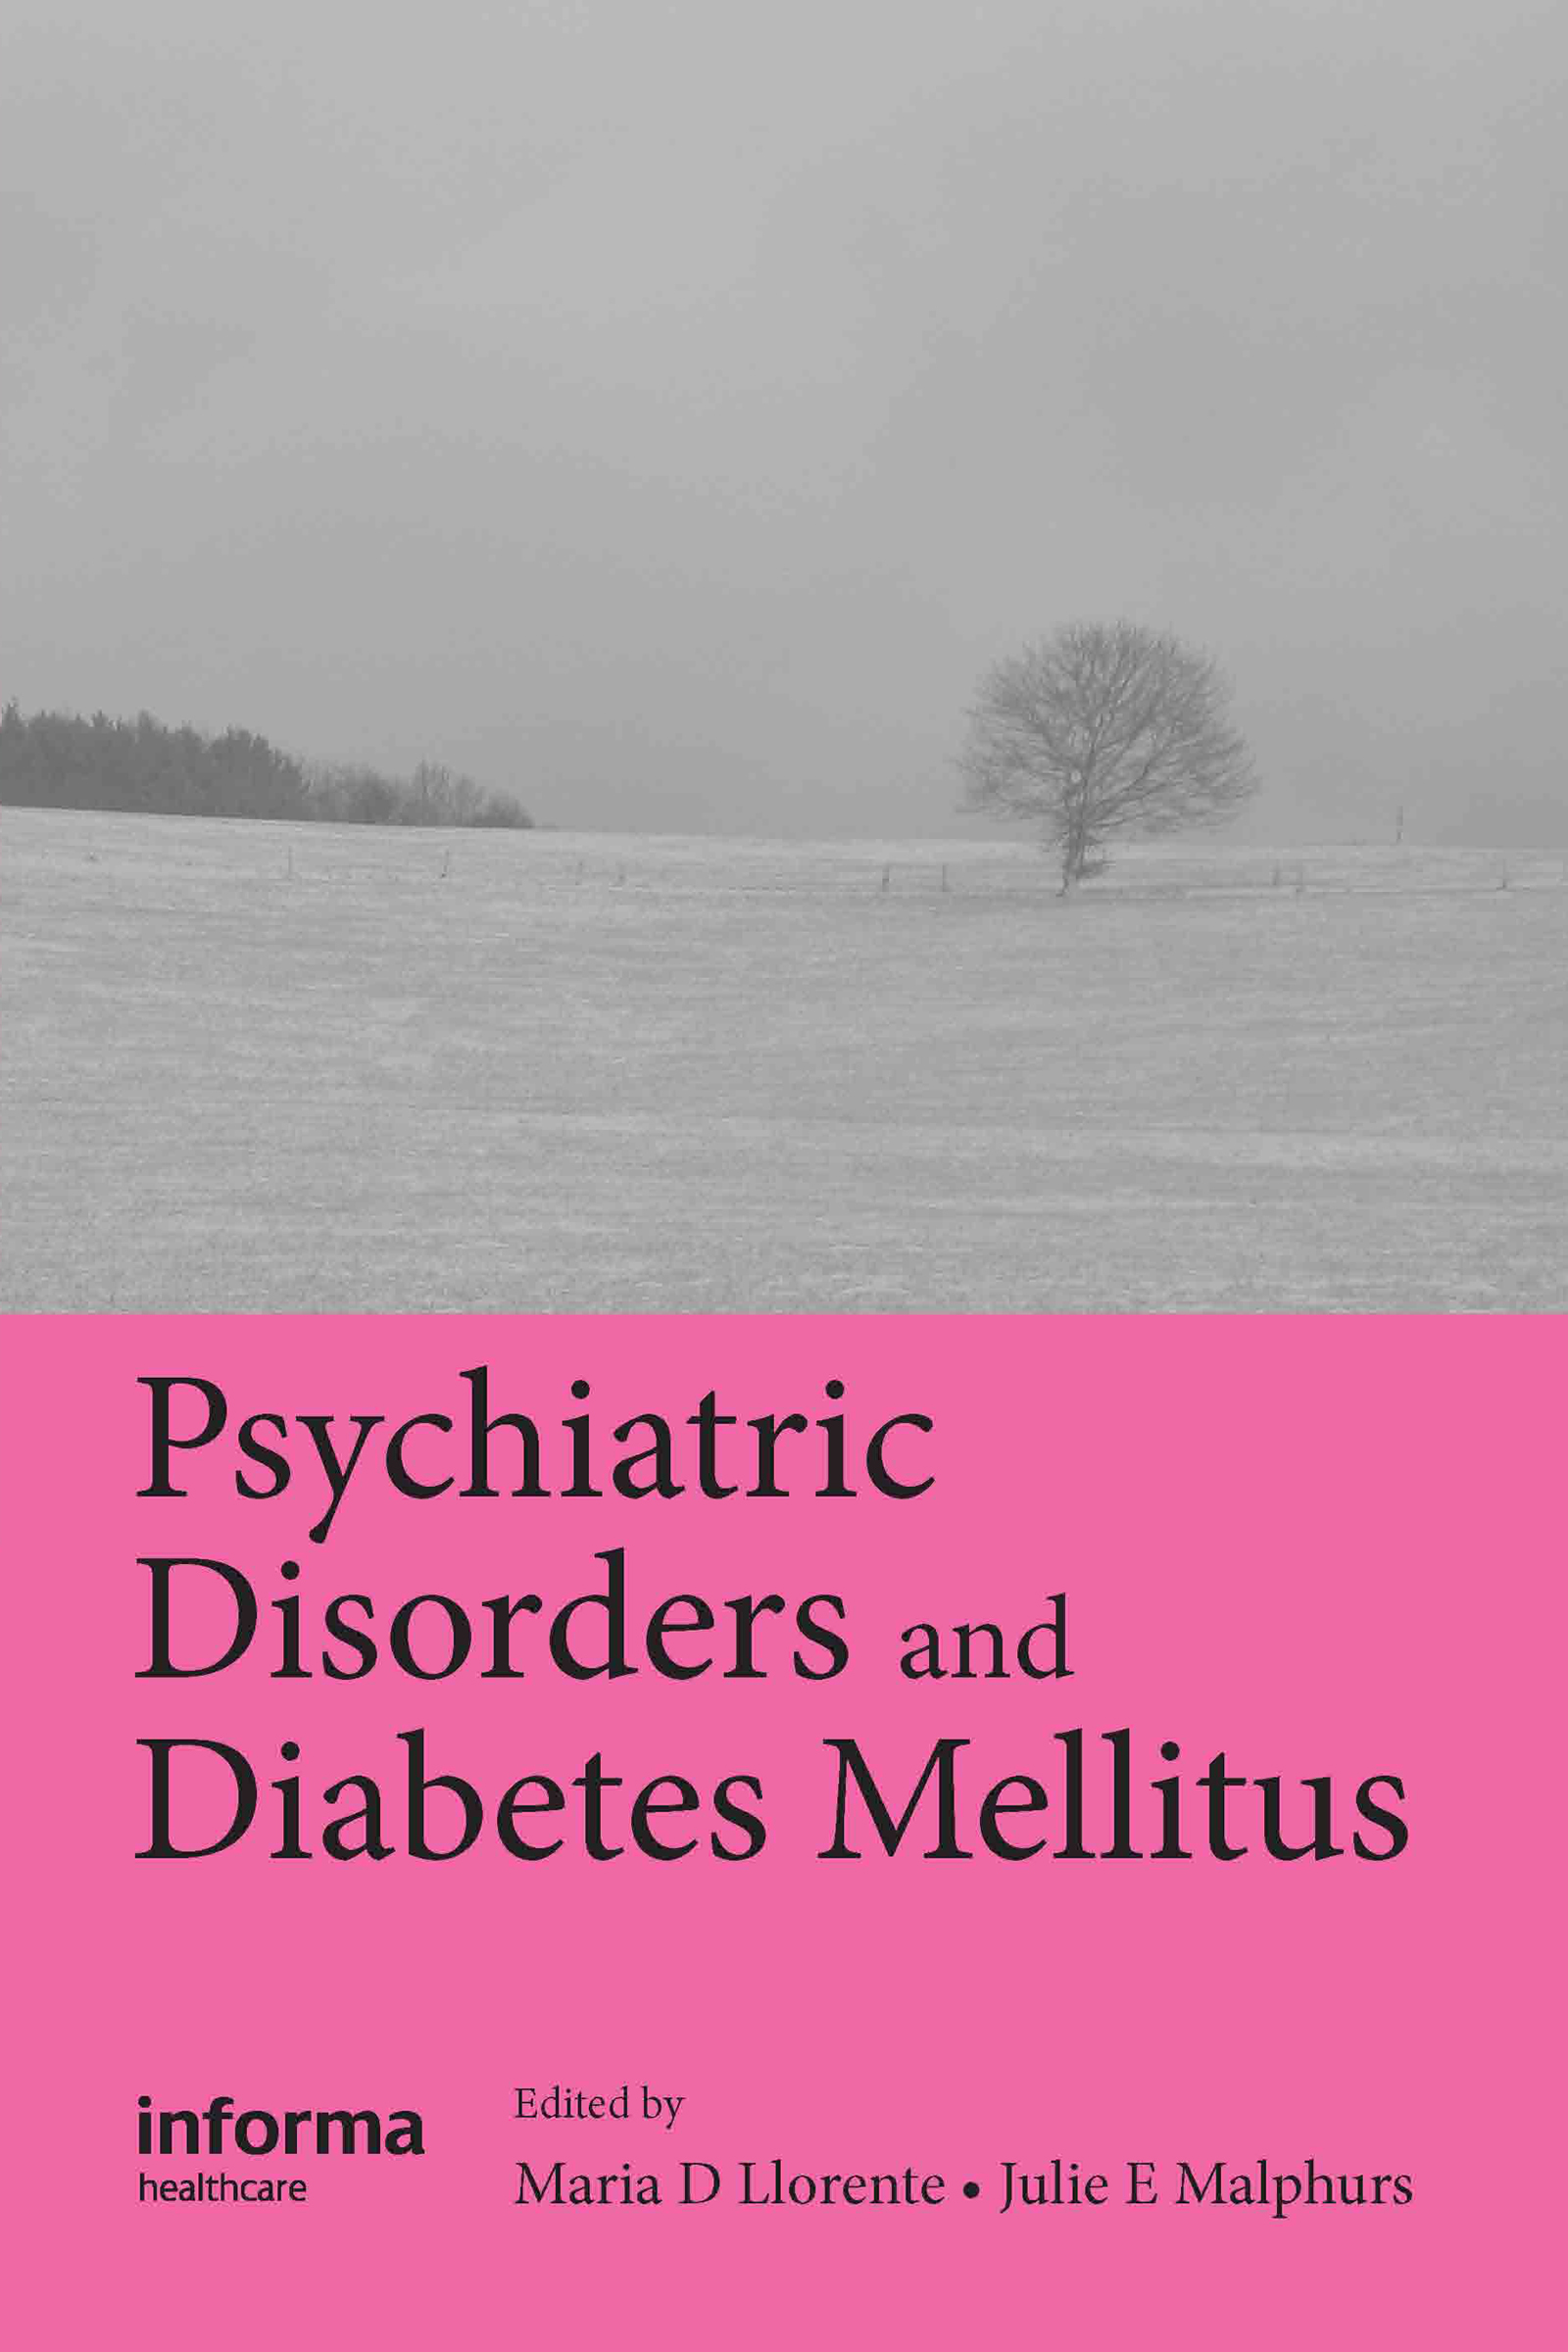 Collaborative care to improve treatment of co-occurring diabetes mellitus and psychiatric disorders